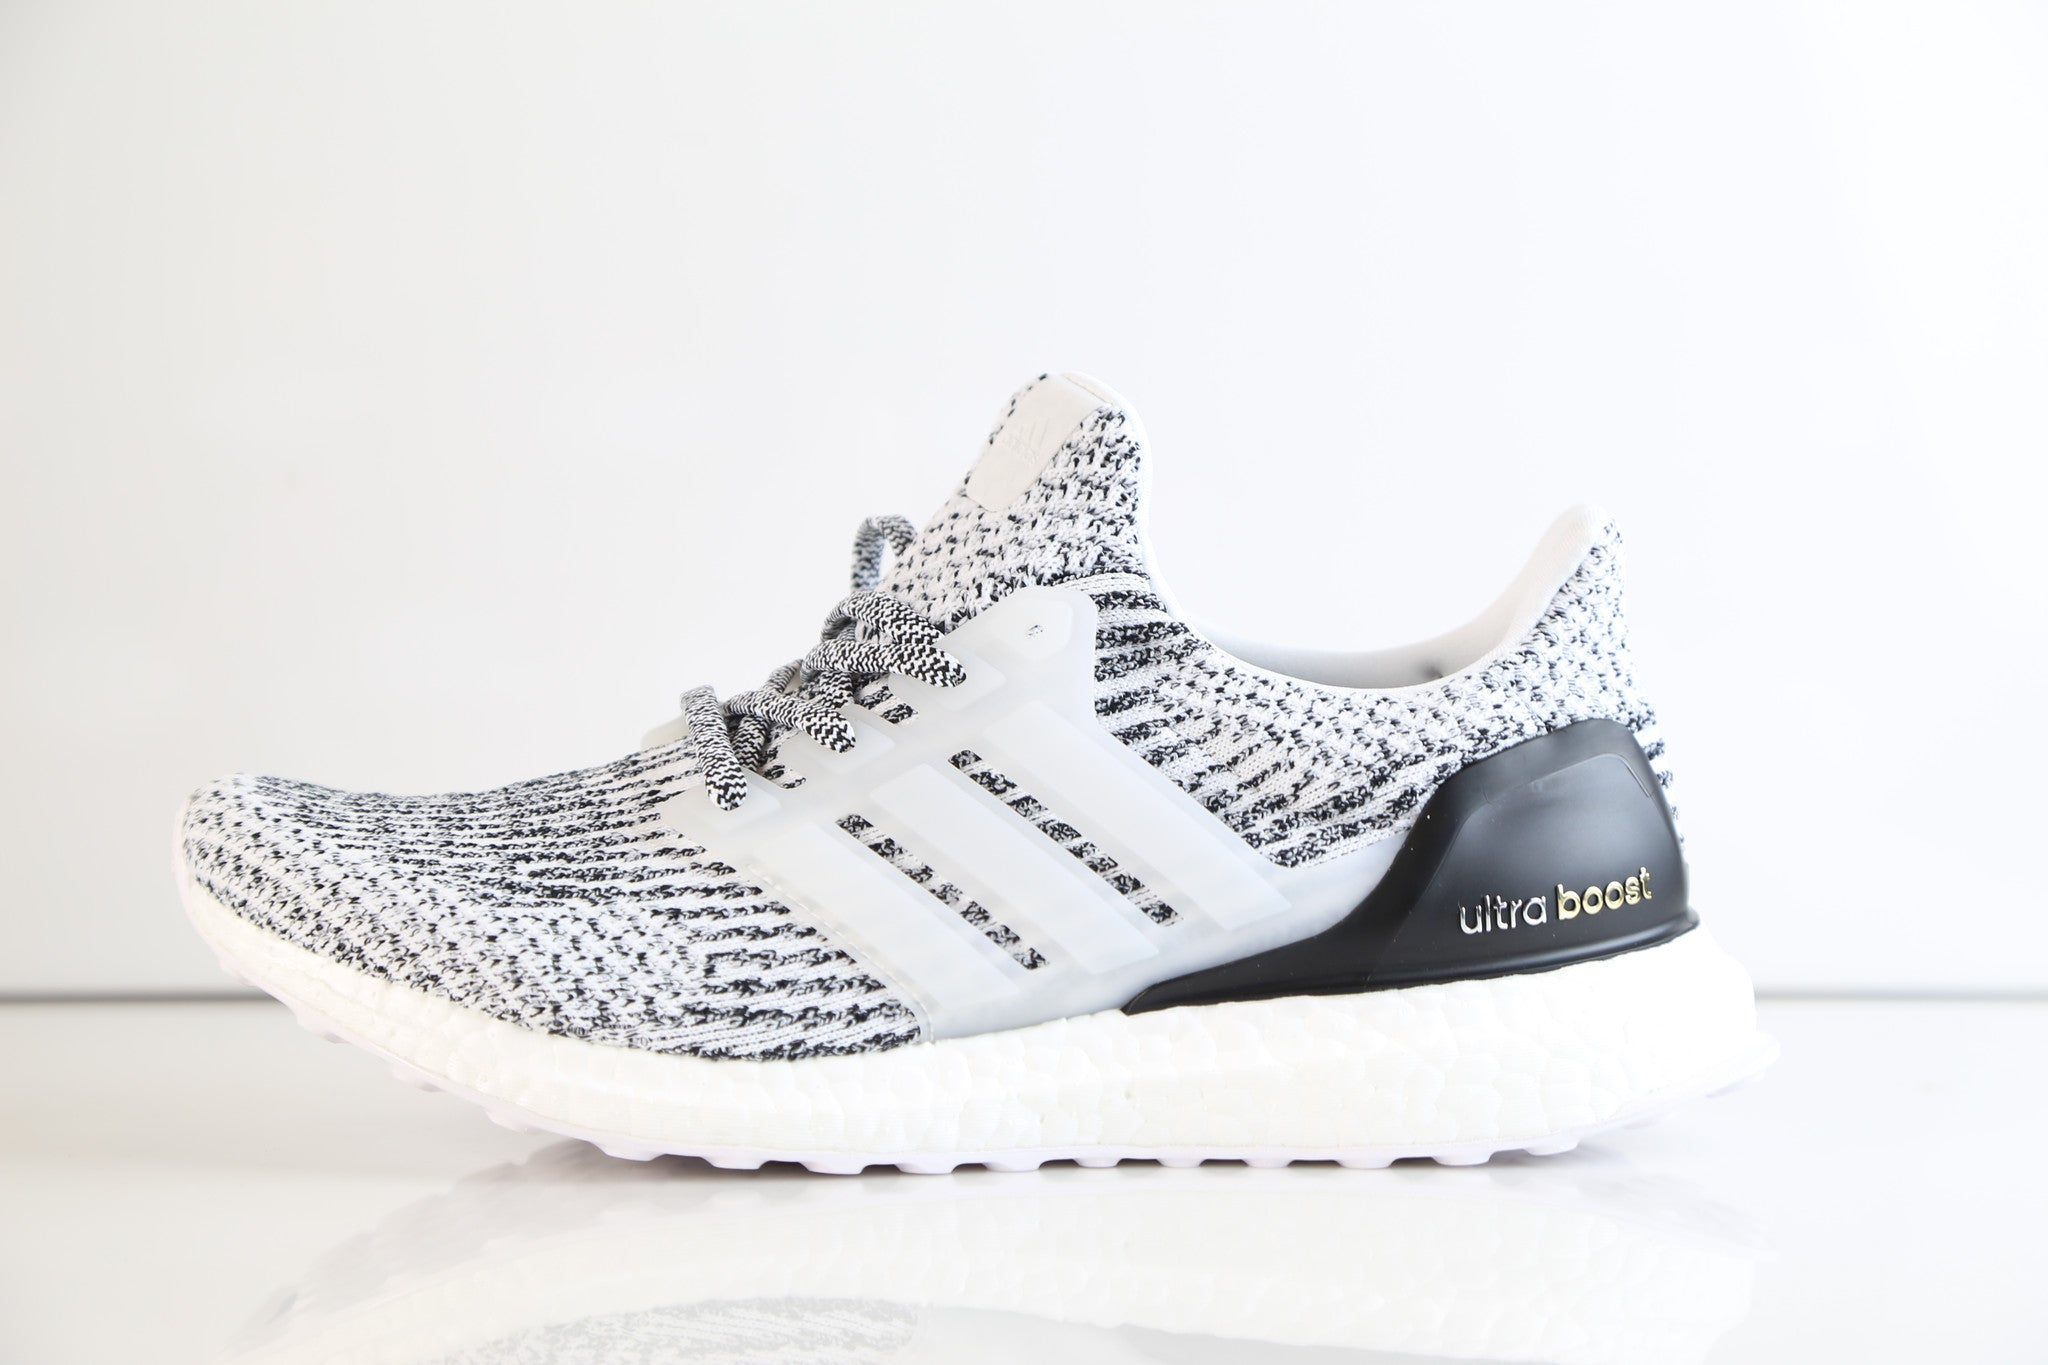 7af3a35500c06 Adidas Ultra Boost 3.0 Oreo White Black S80636